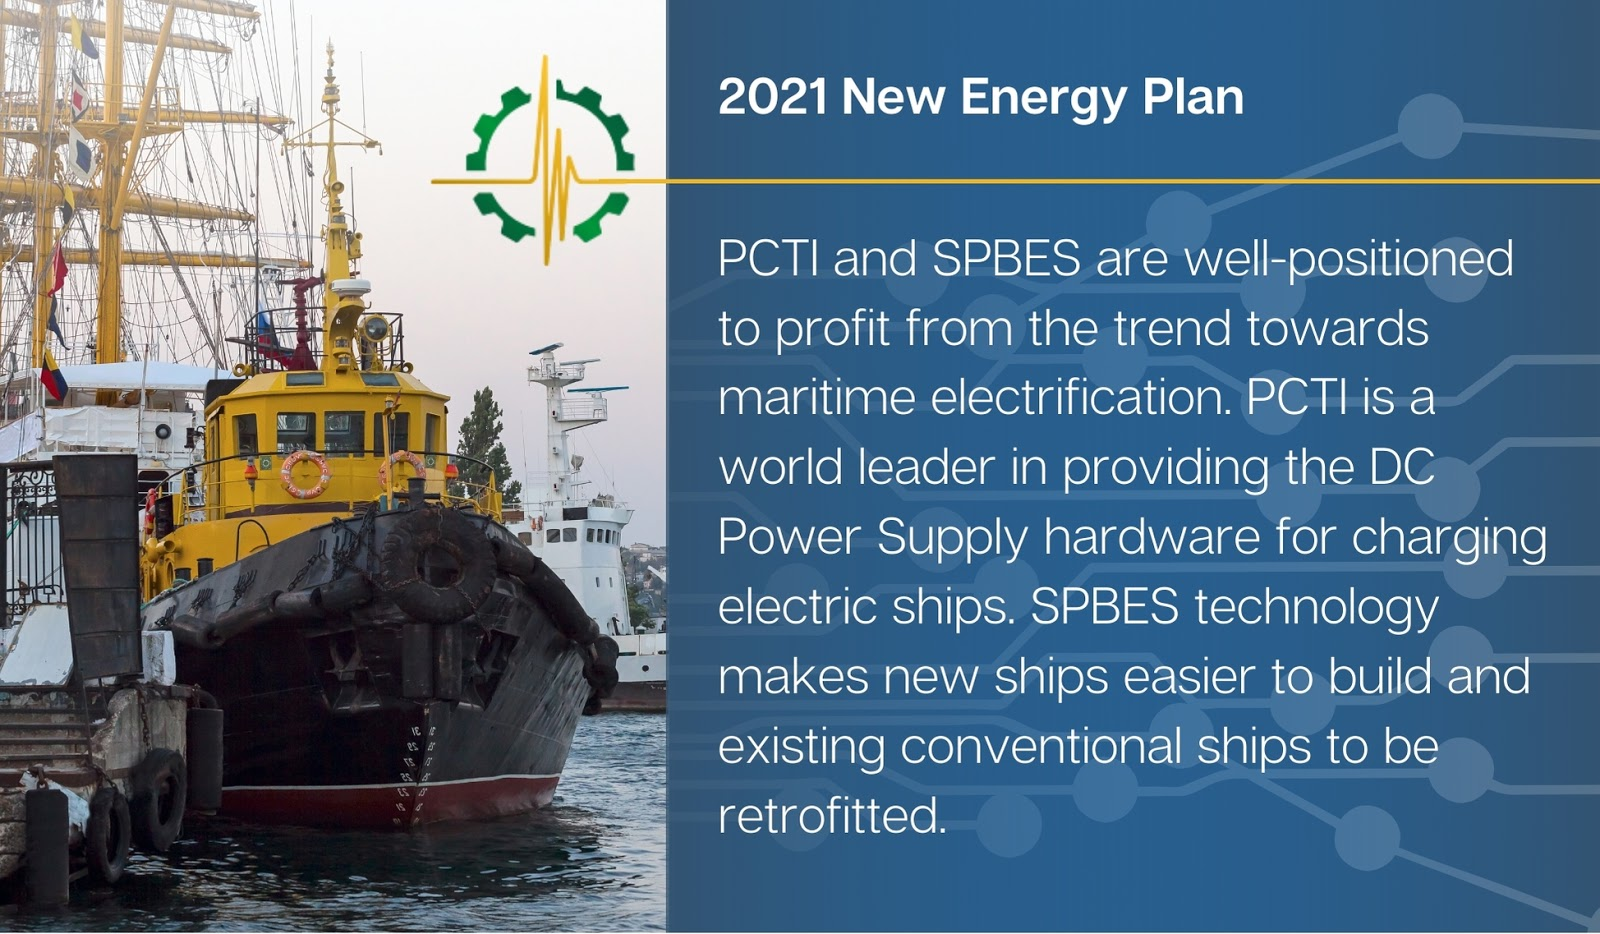 PCTI and SPBES are well-positioned to profit from the trend towards maritime electrification